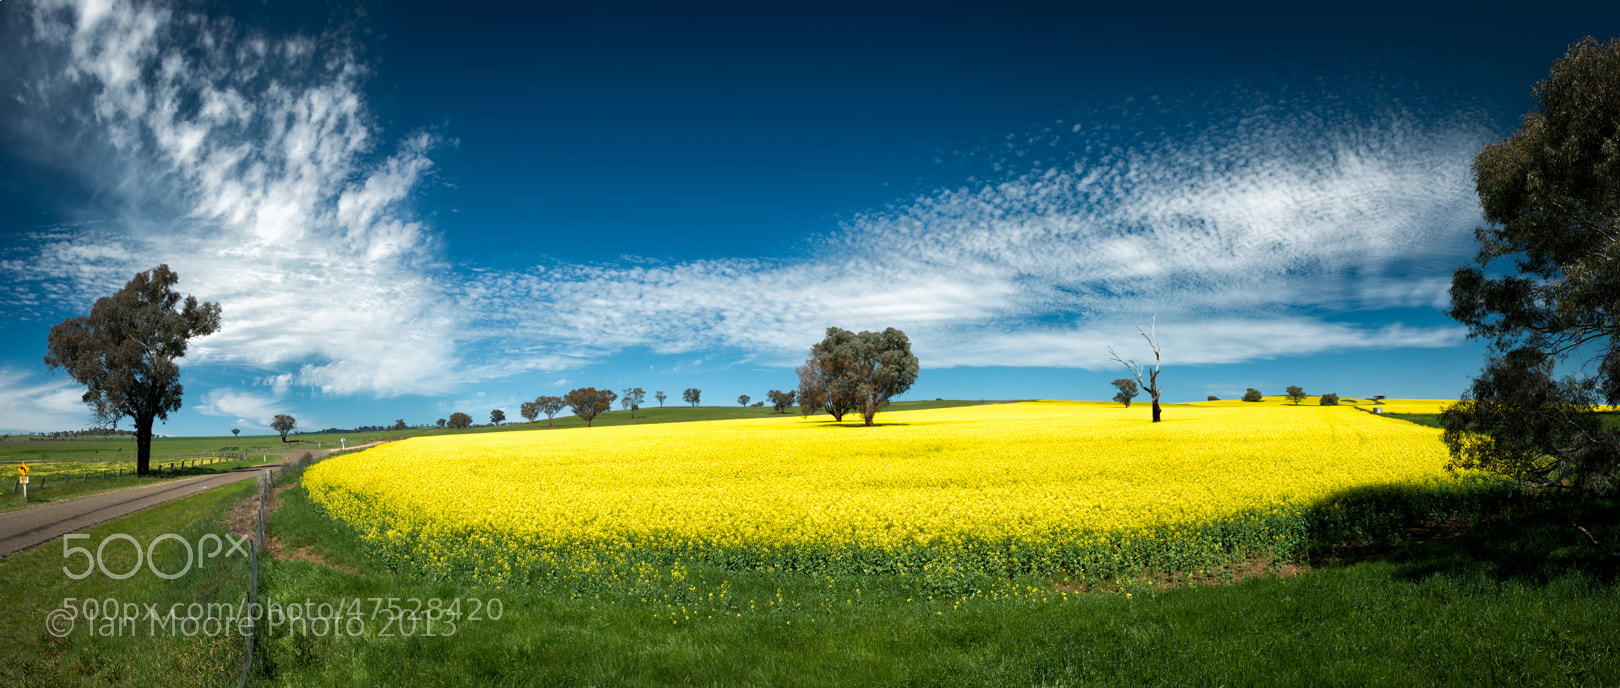 Photograph Canola fields by Ian Moore on 500px